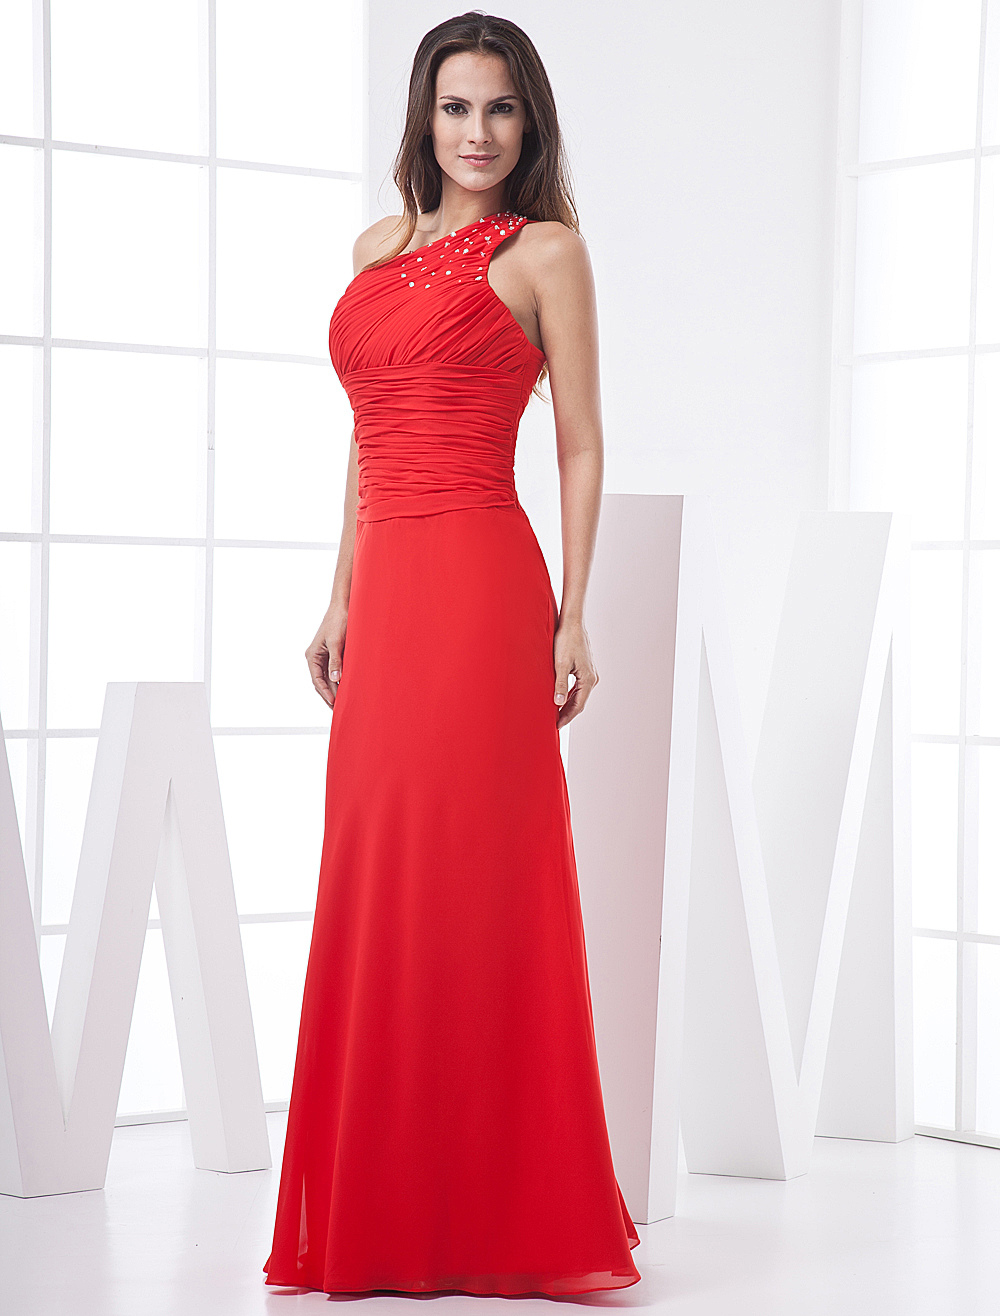 Red Sheath Beading One-Shoulder Floor-Length Chiffon Evening Dress with Ruched Bodice and Waistband